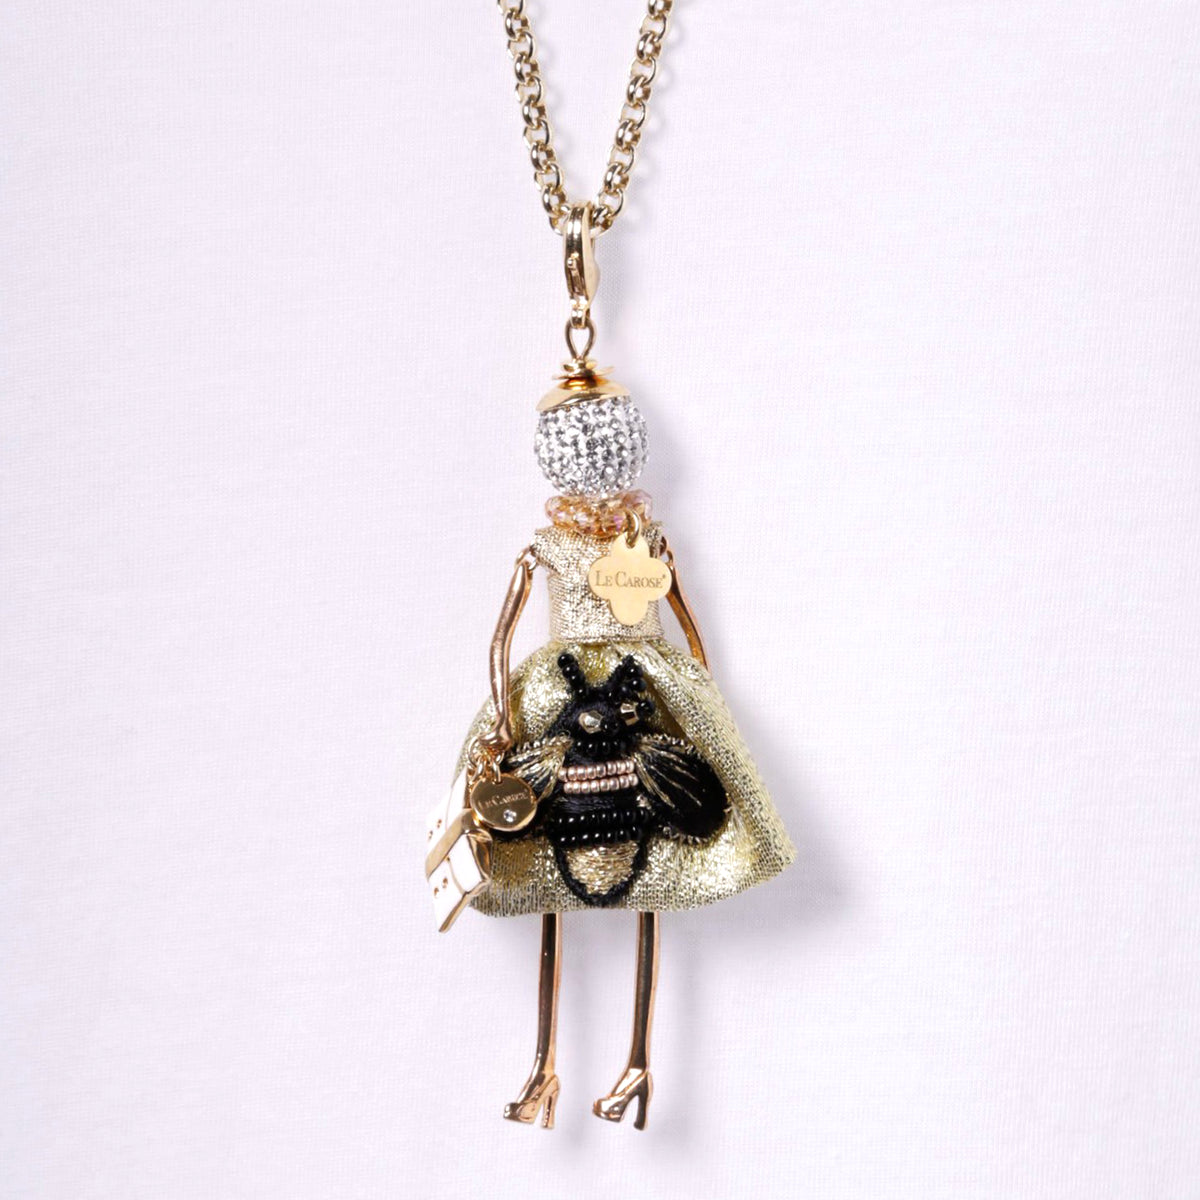 LE CAROSE NECKLACE, BEE